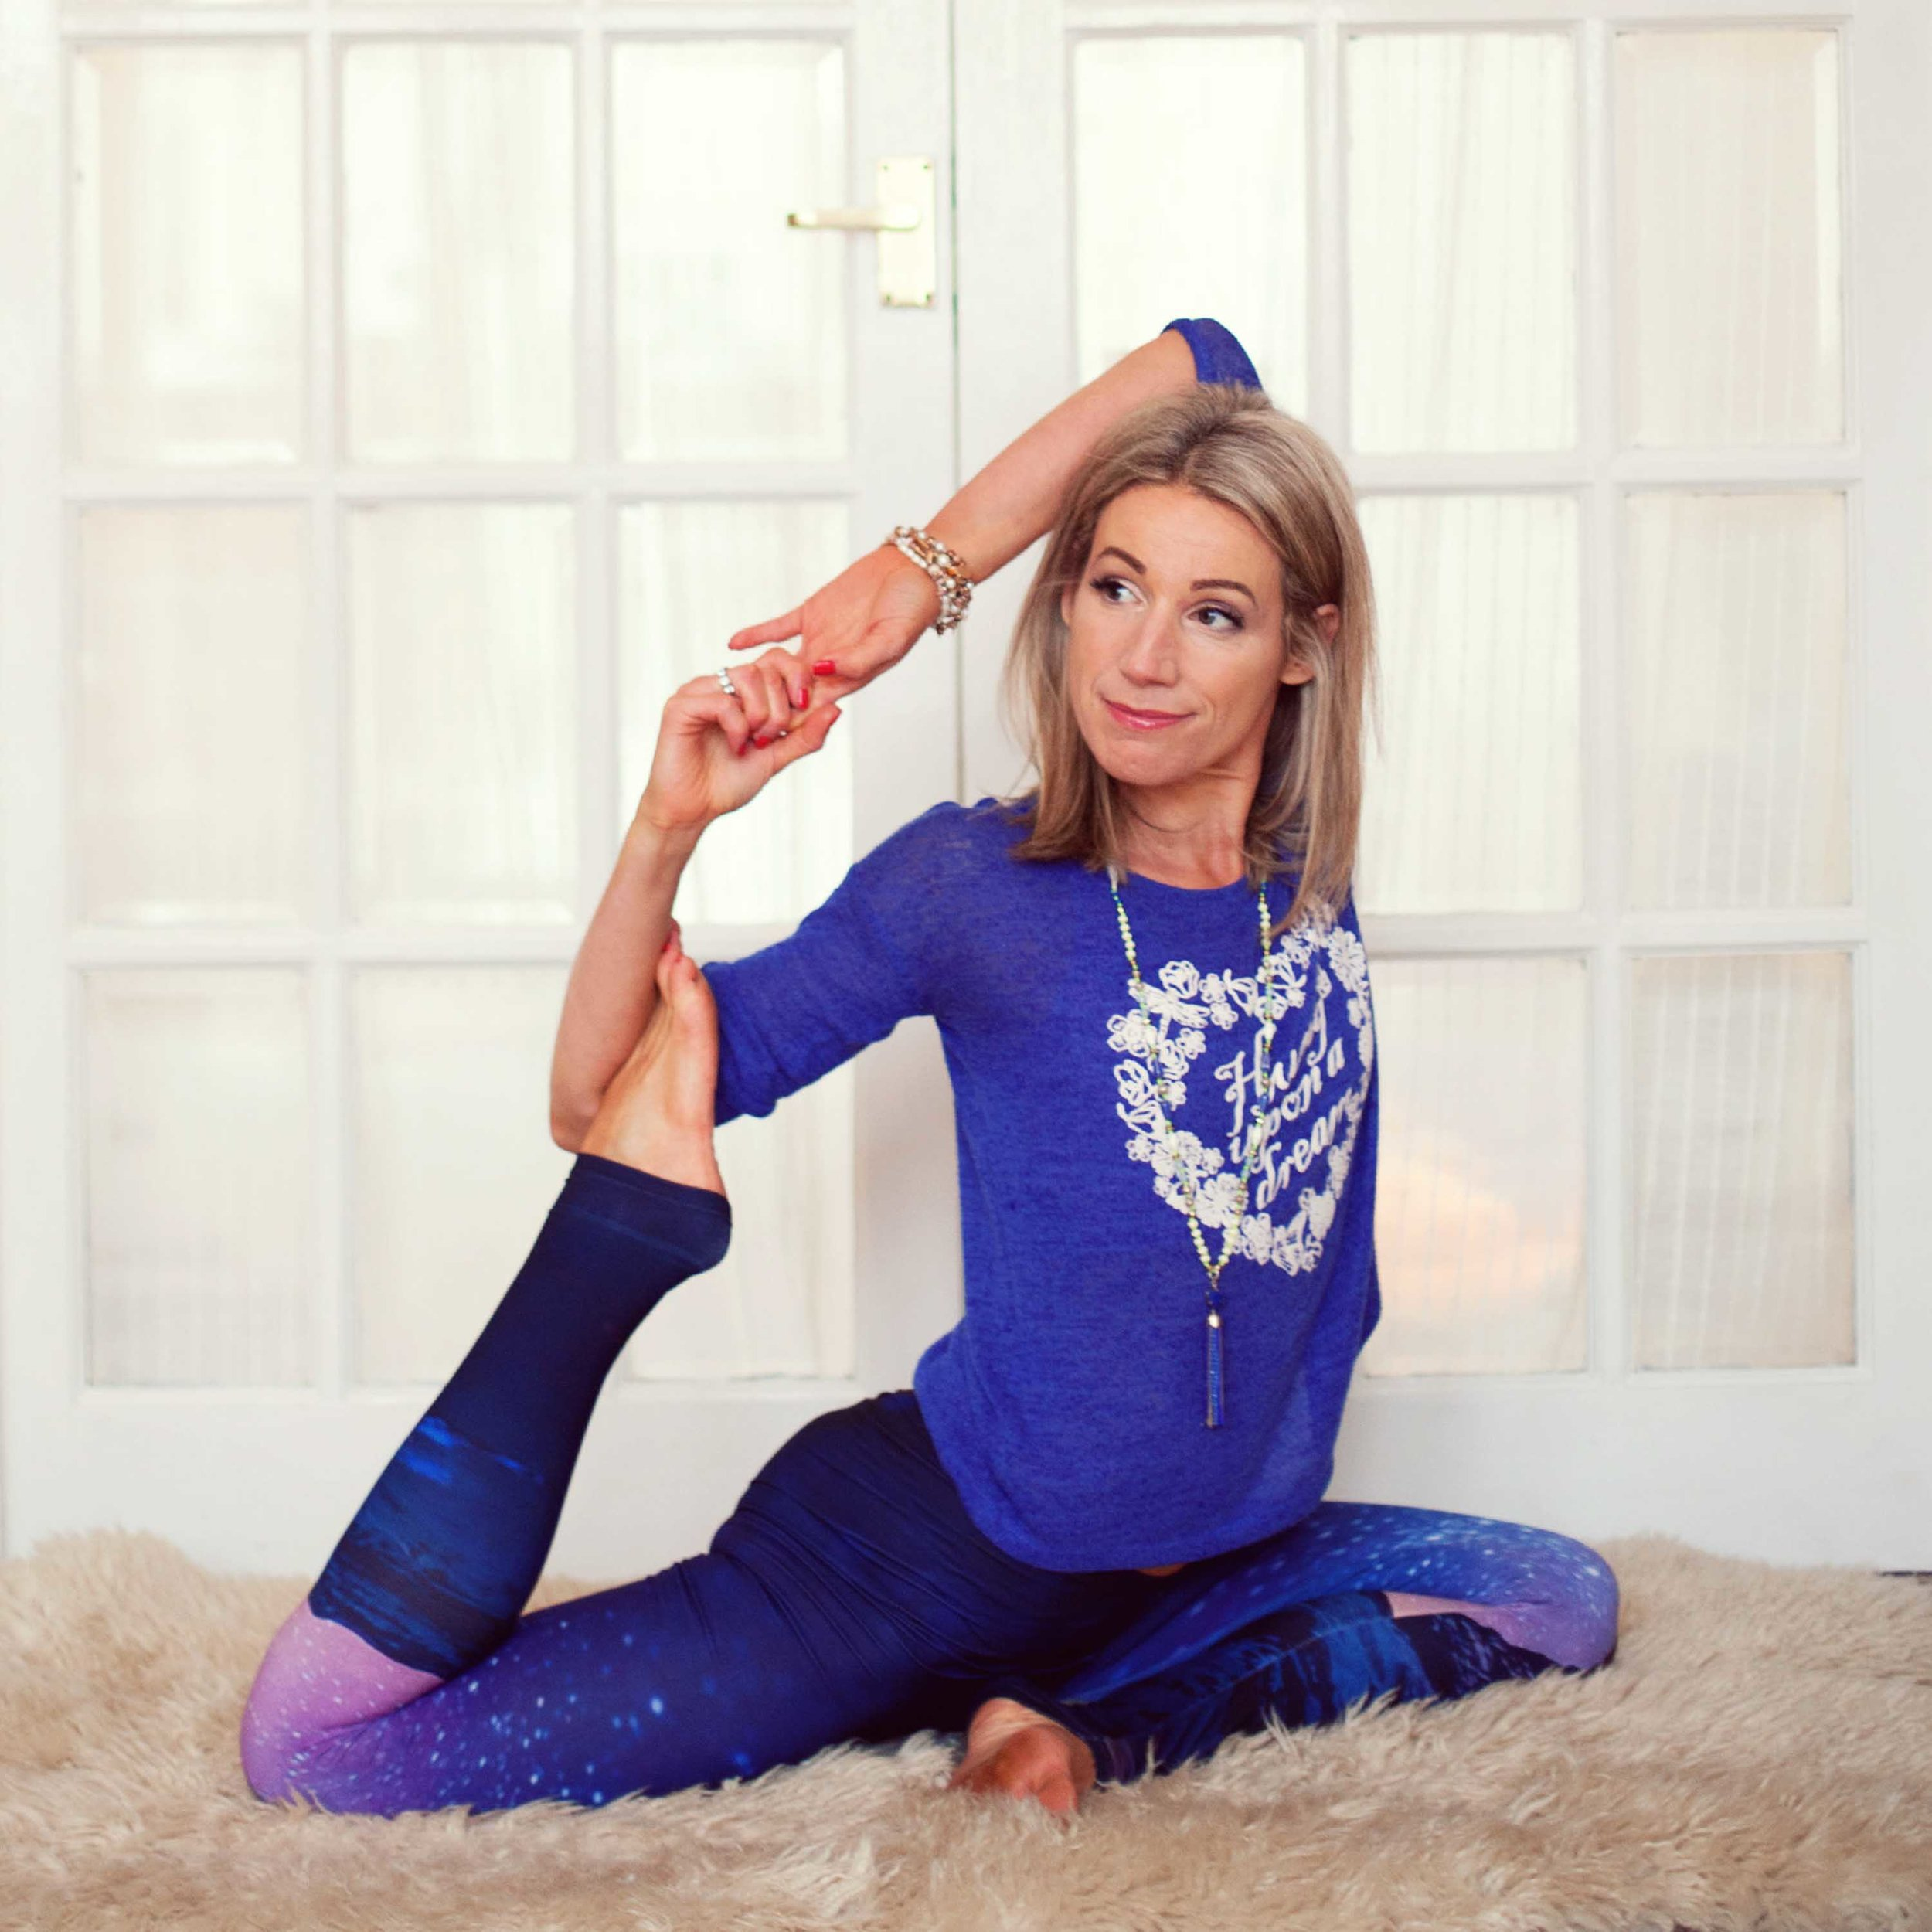 For Fitness - Online Yoga Course